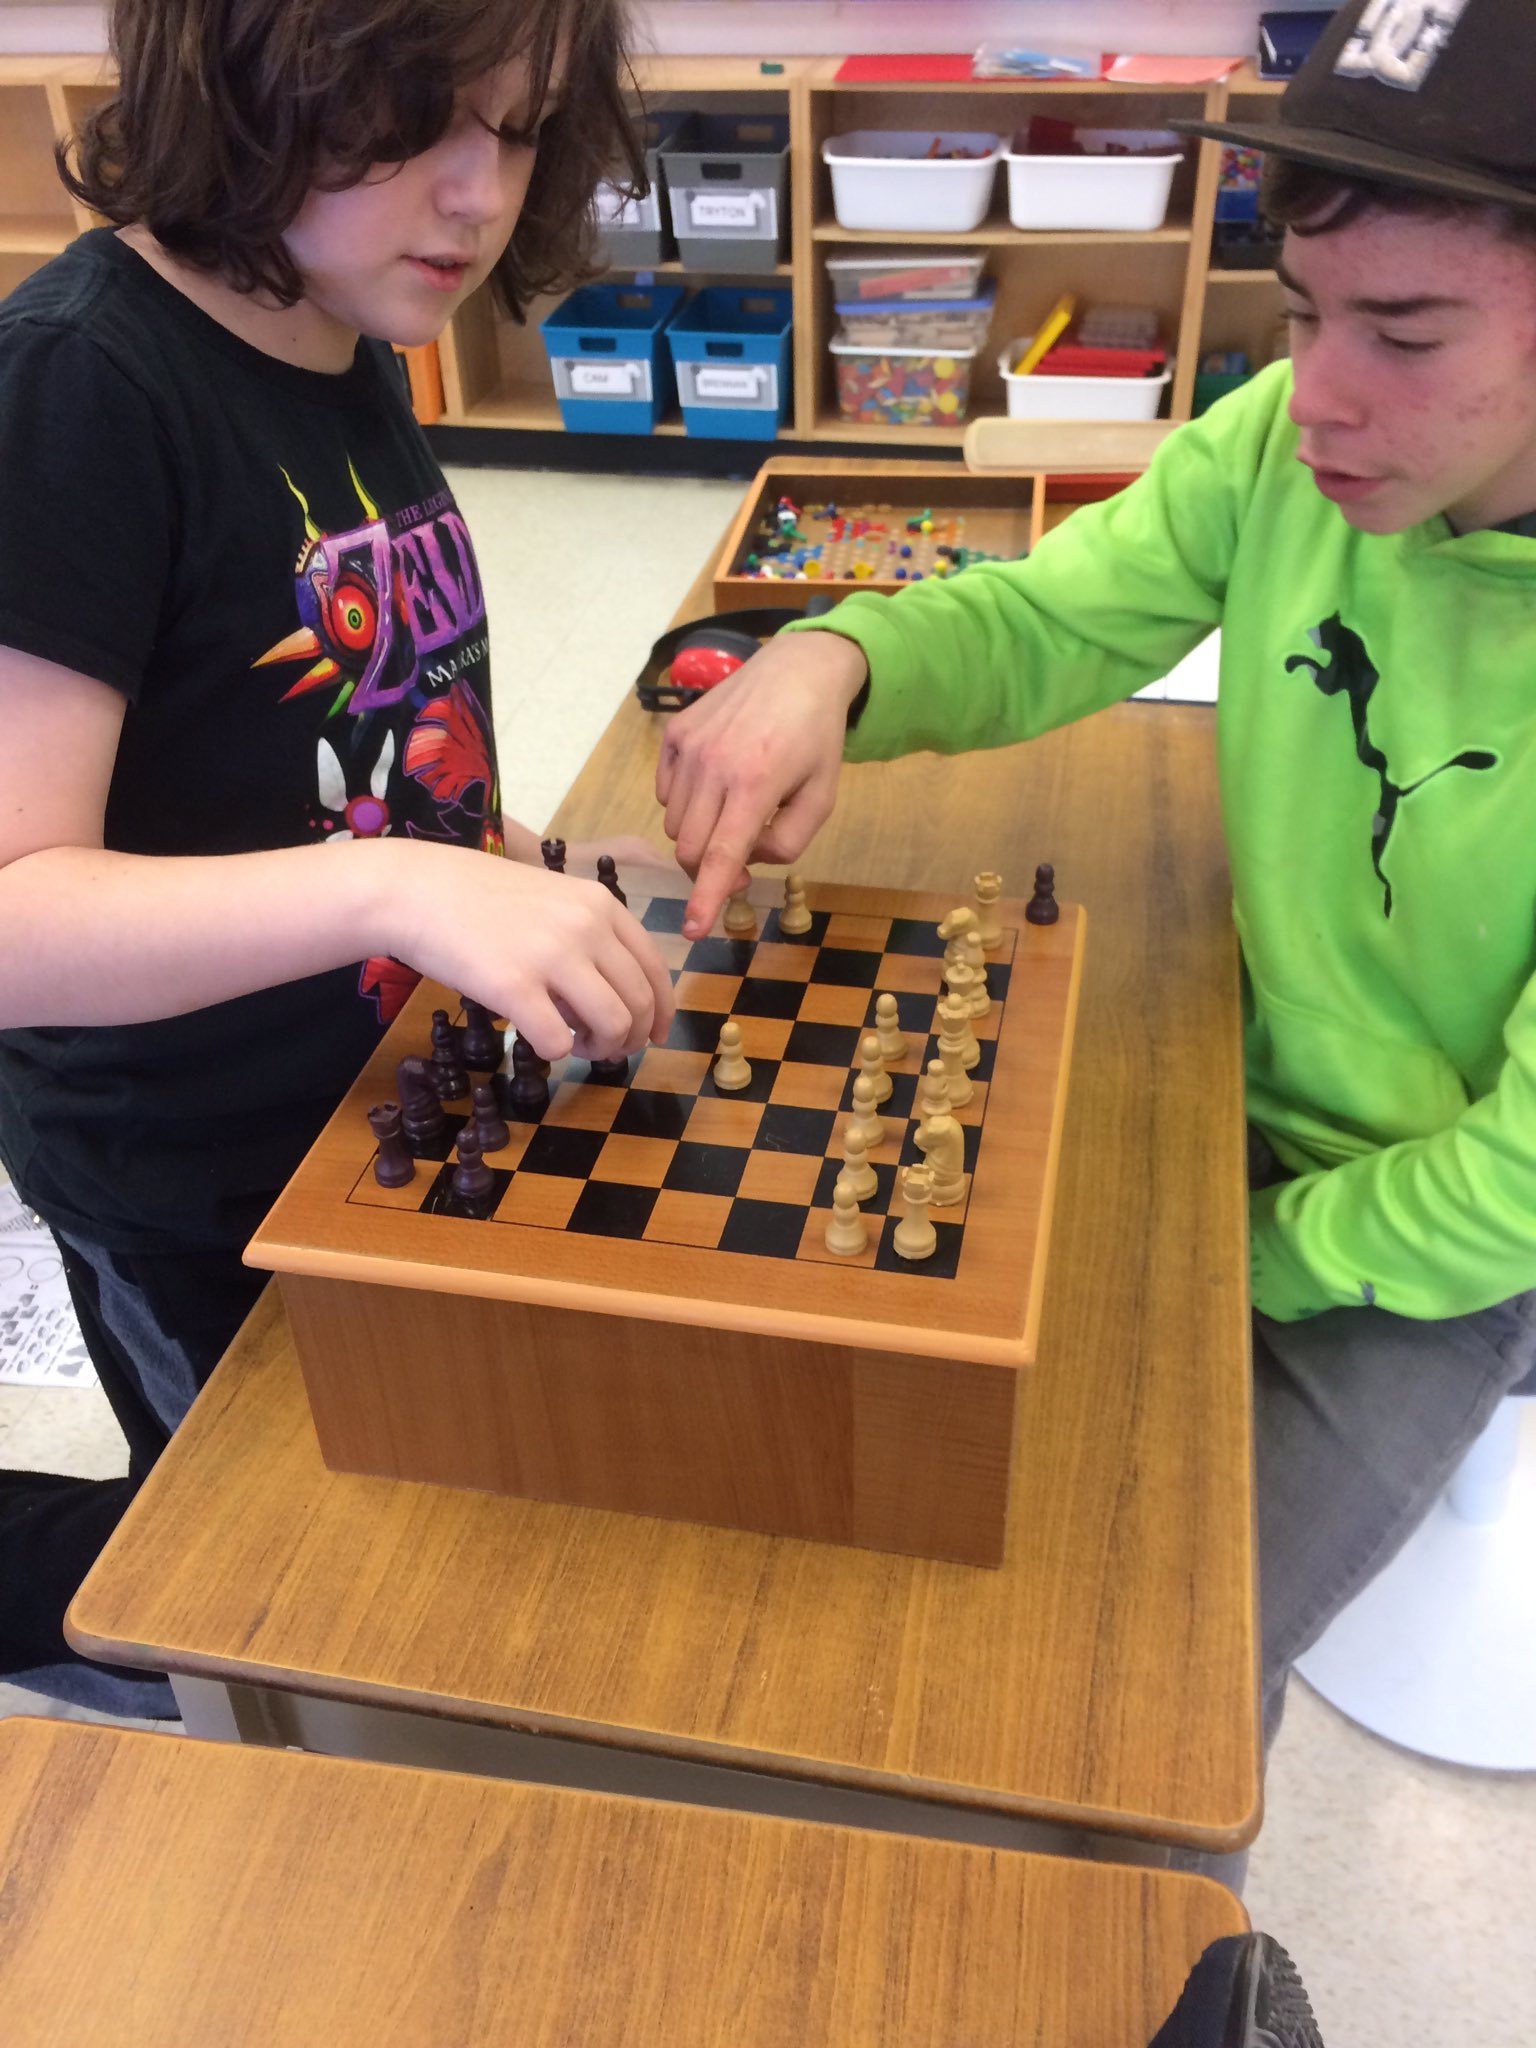 Bridging Ss @GravenhurstPS building their social and conversation skills while learning to play chess! #tldsblearns #CHECKMATE https://t.co/F8jz4Ml5Tn